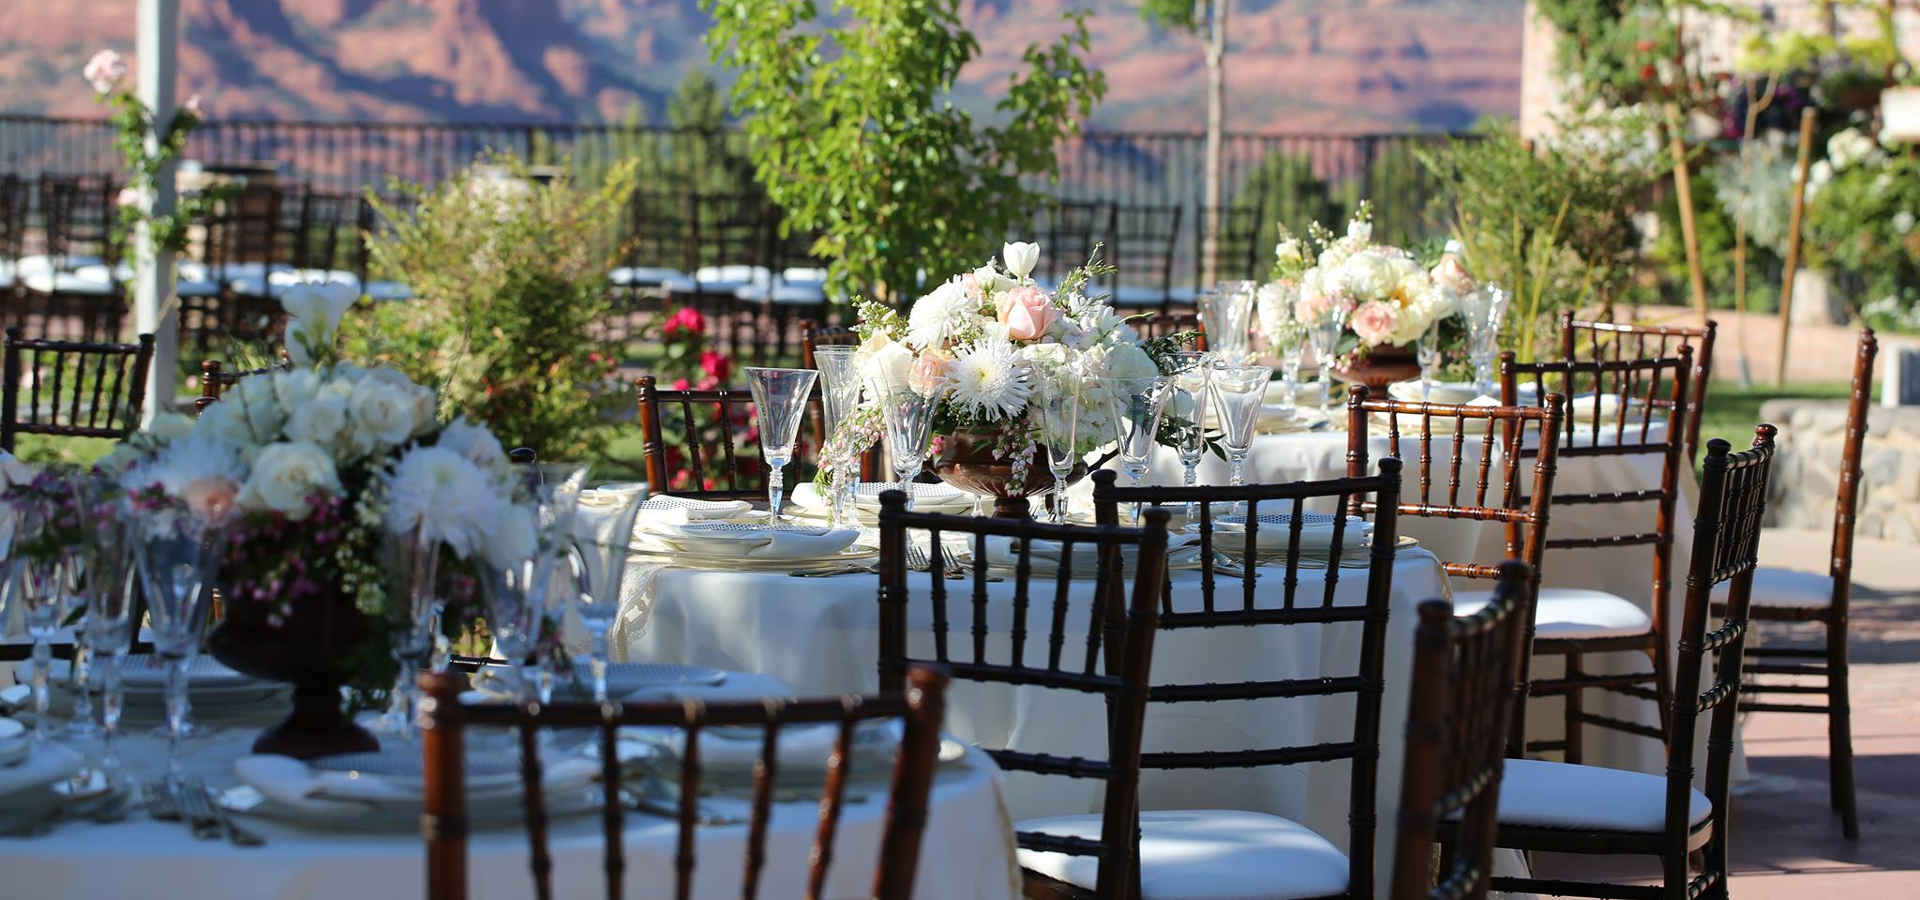 Party Rentals in the Verde Valley